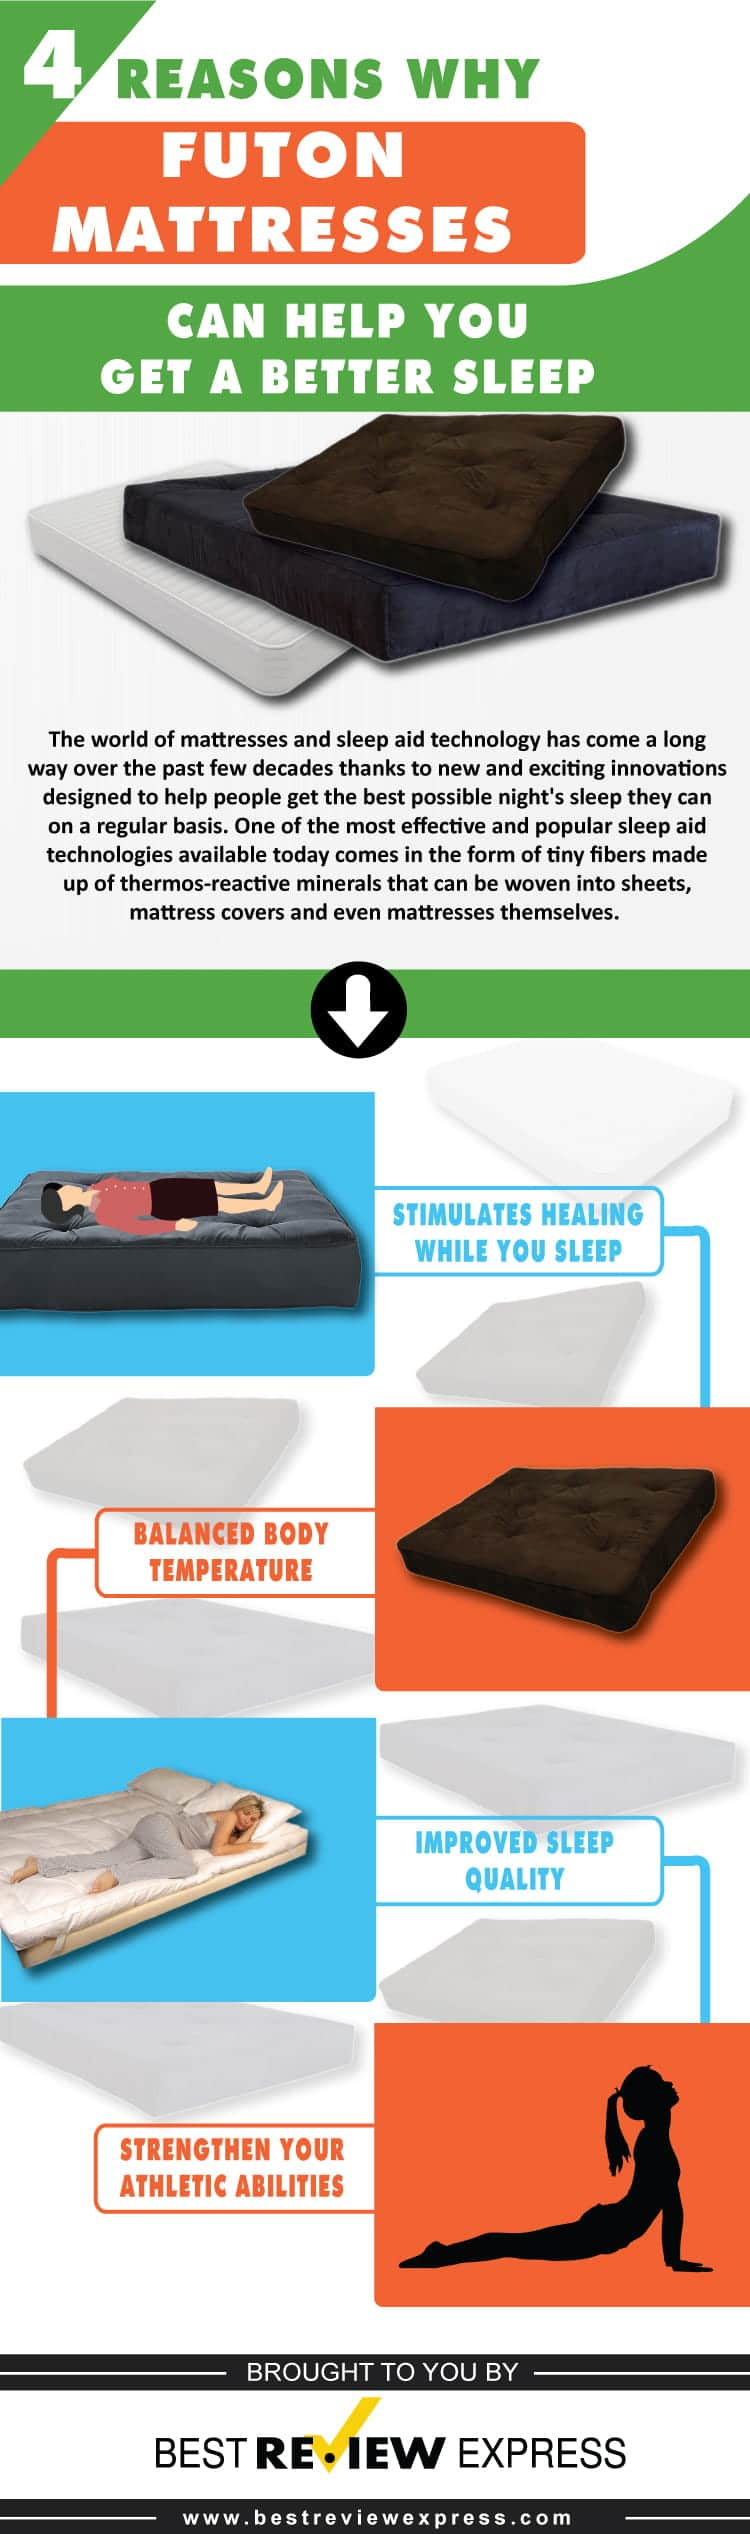 4 Reasons Why Futon Mattresses Can Help You Get a Better Sleep